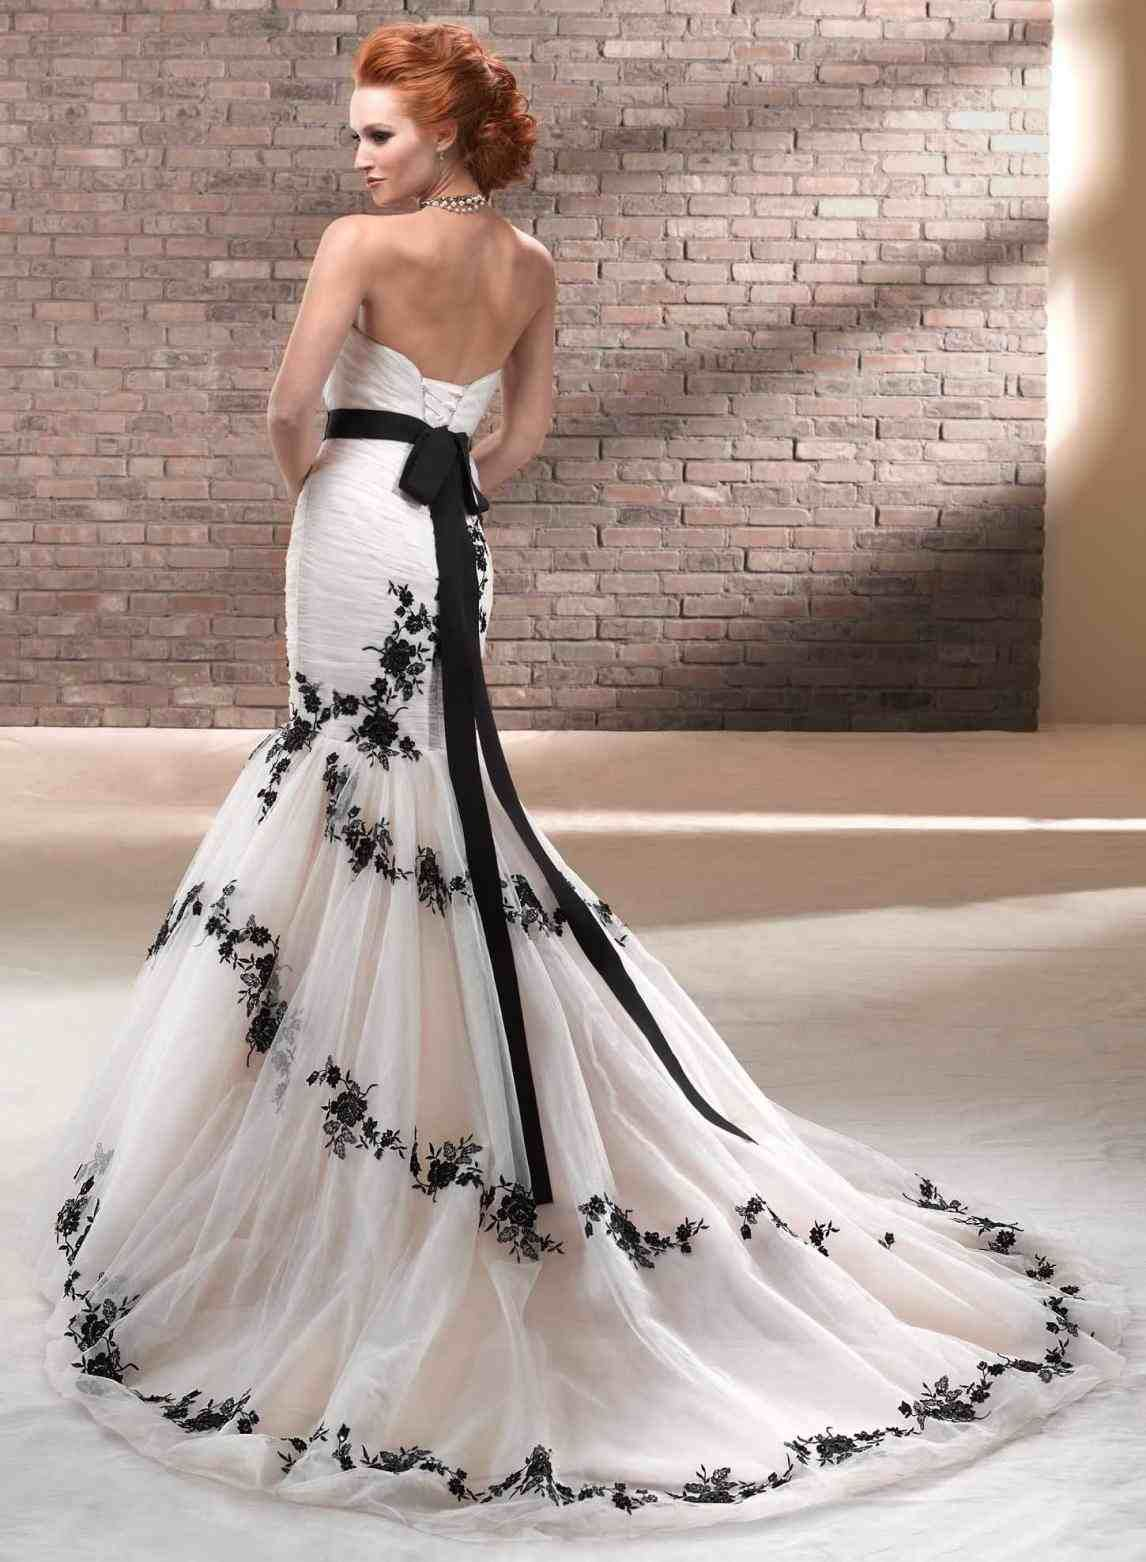 Wedding dresses for older brides plus size  New Post nightmare before christmas sally wedding dress  August